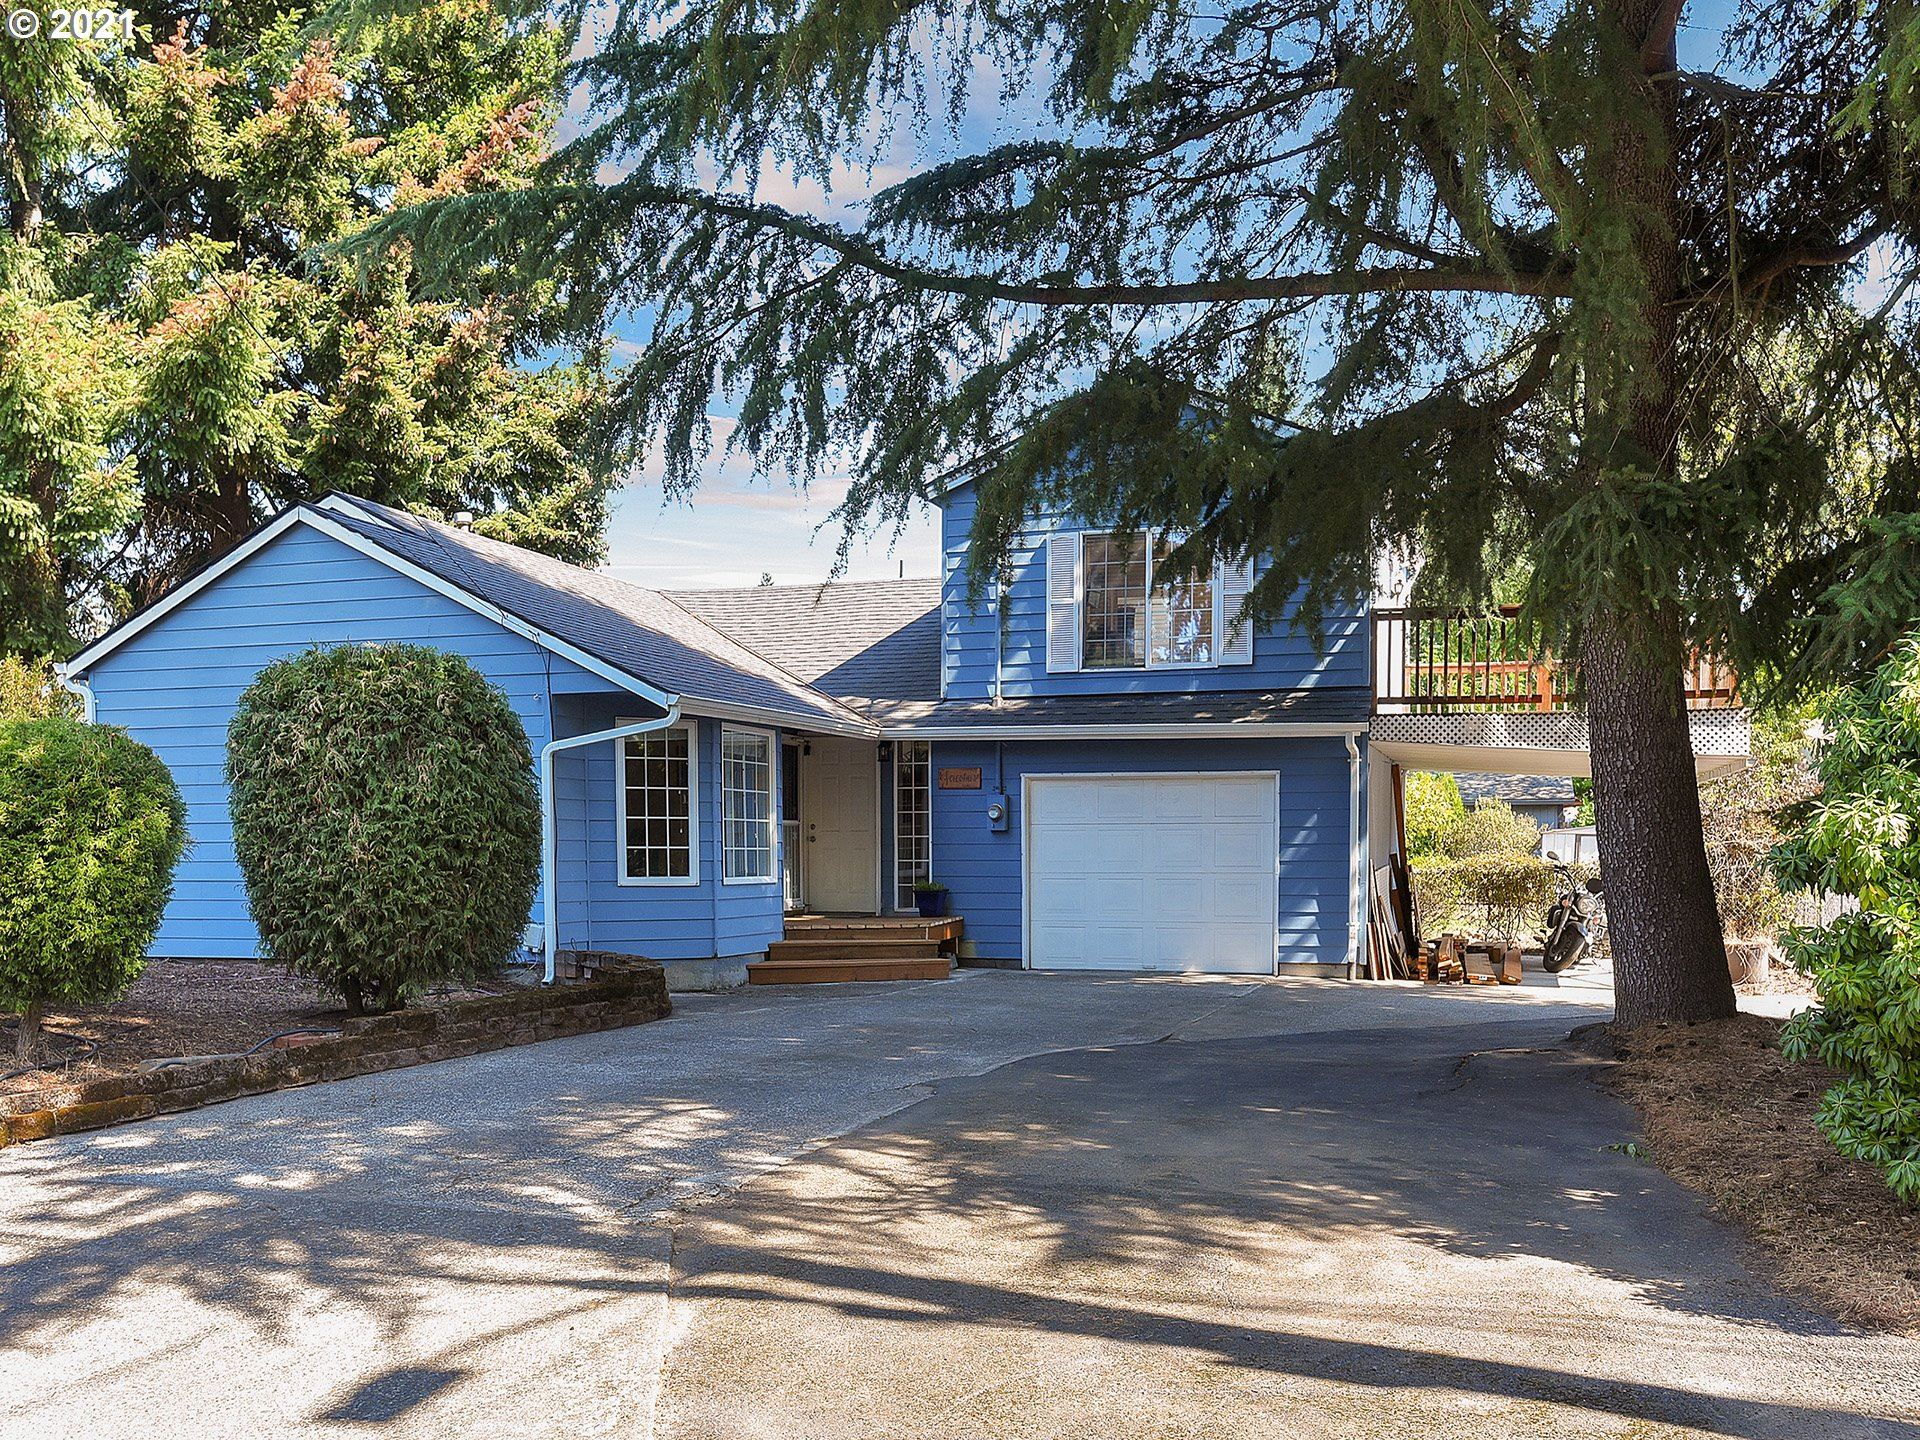 2342 SE 110TH AVE, Portland, OR 97216 - MLS#: 21338524